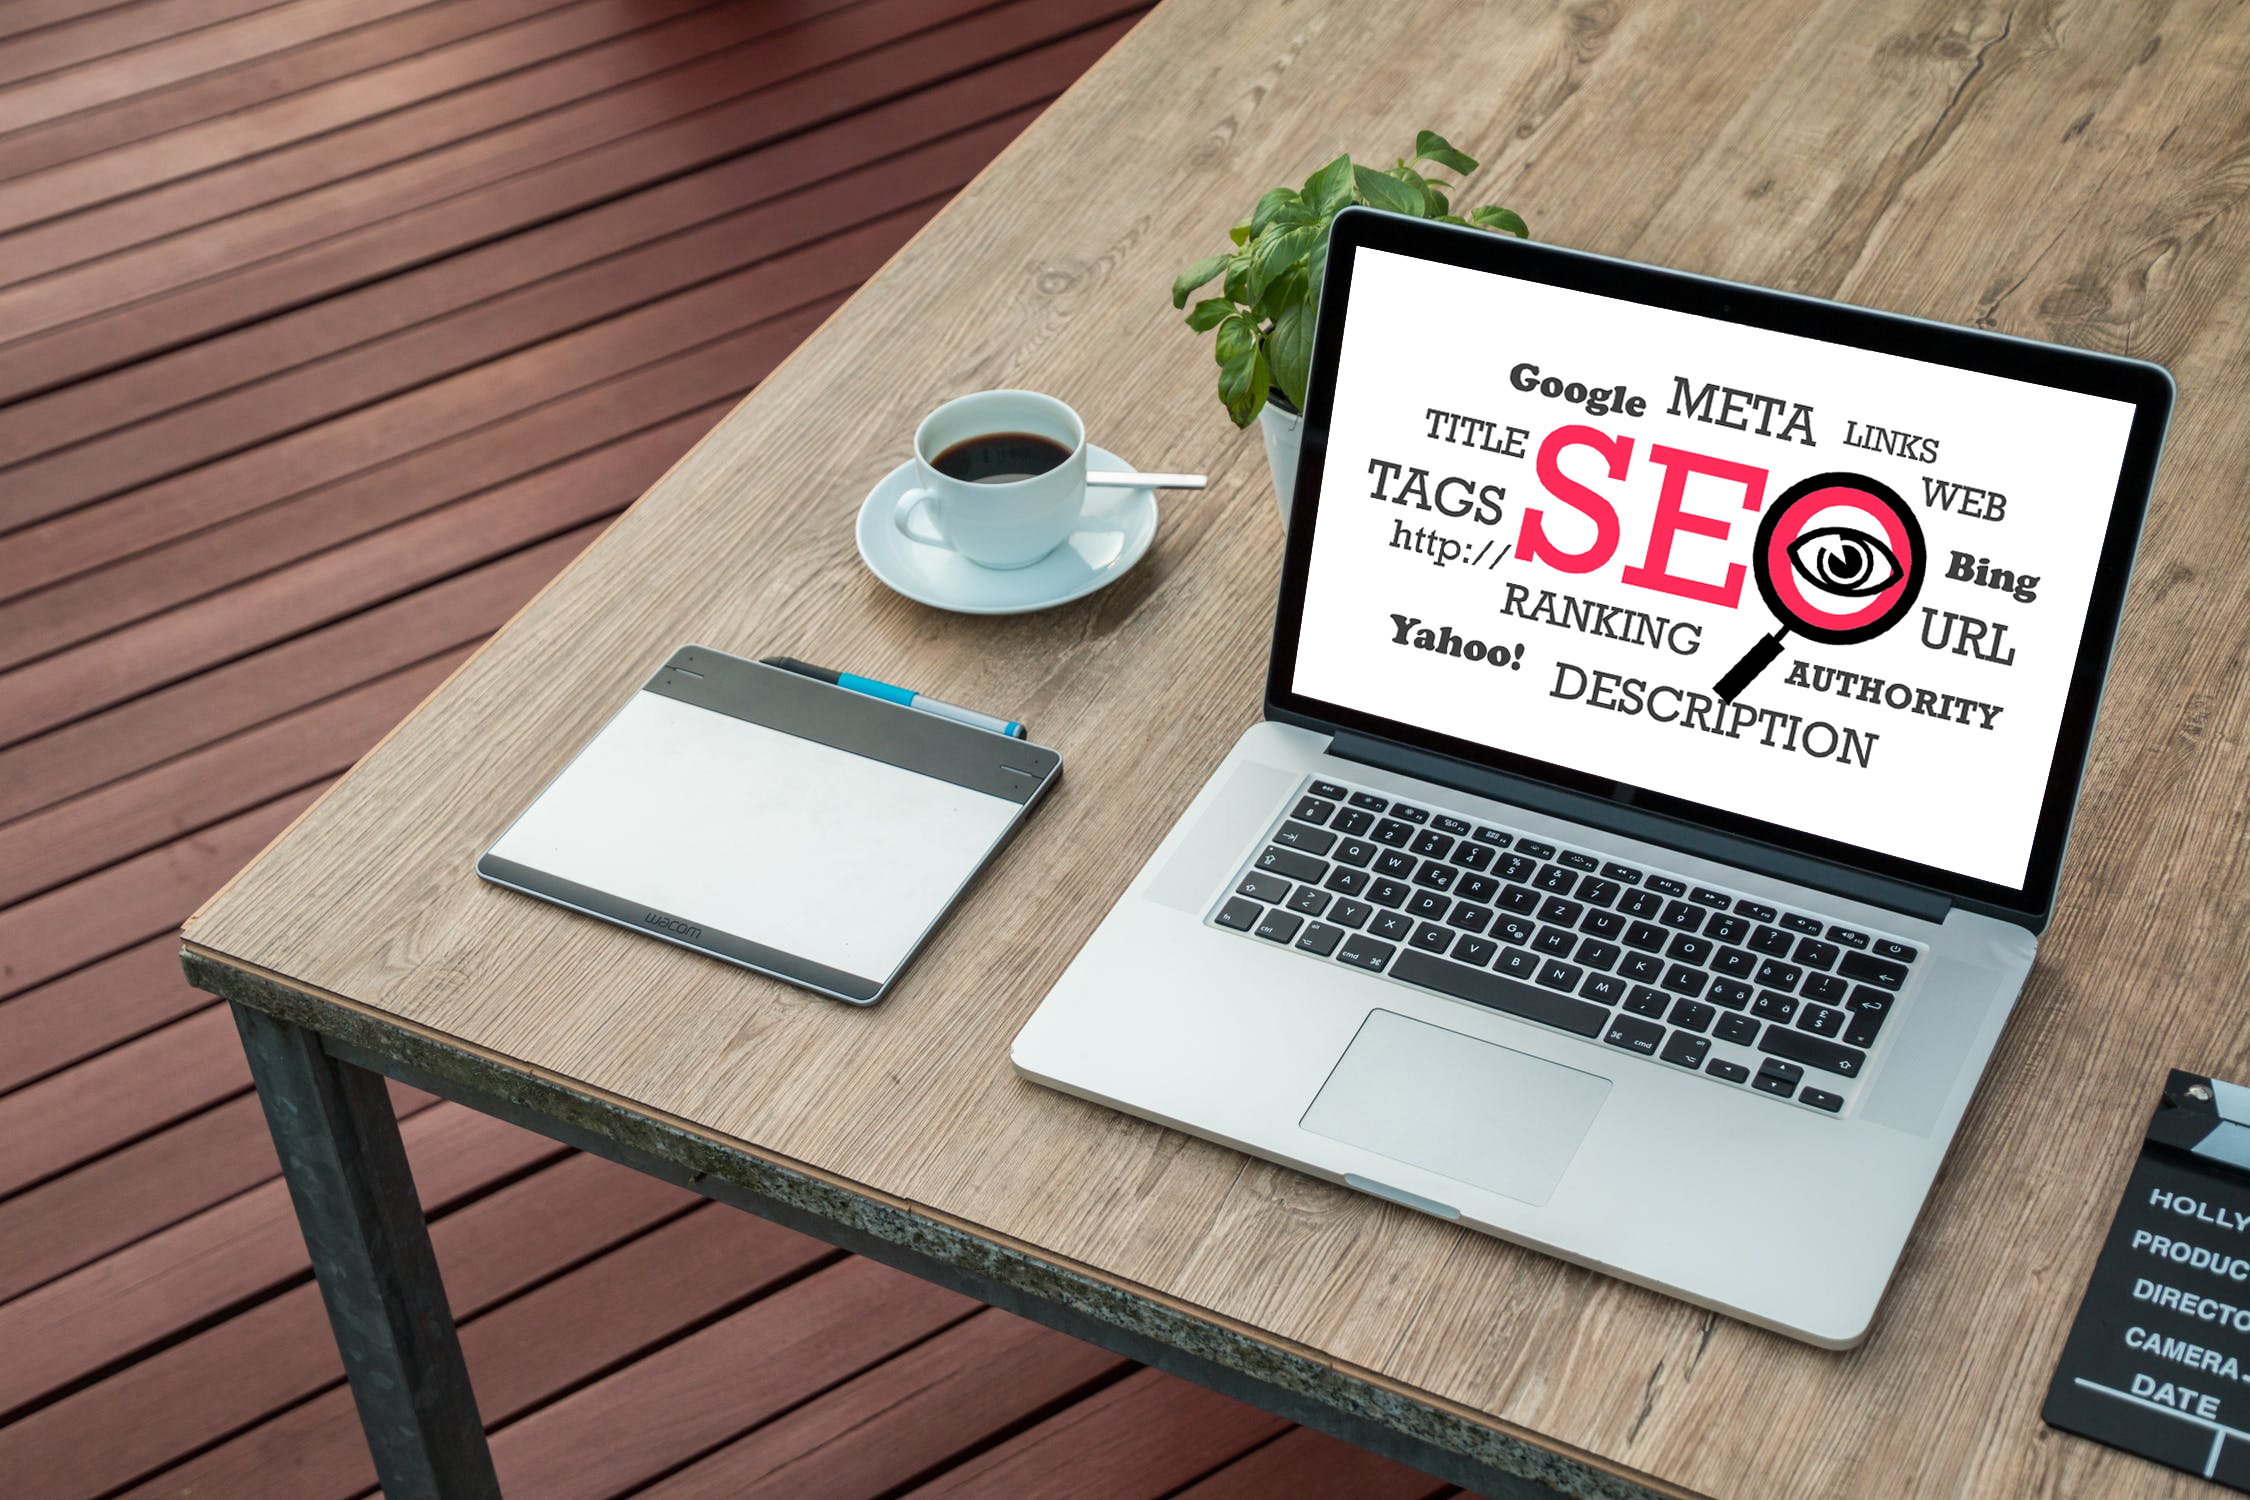 What is SEO - Search Engine Optimization